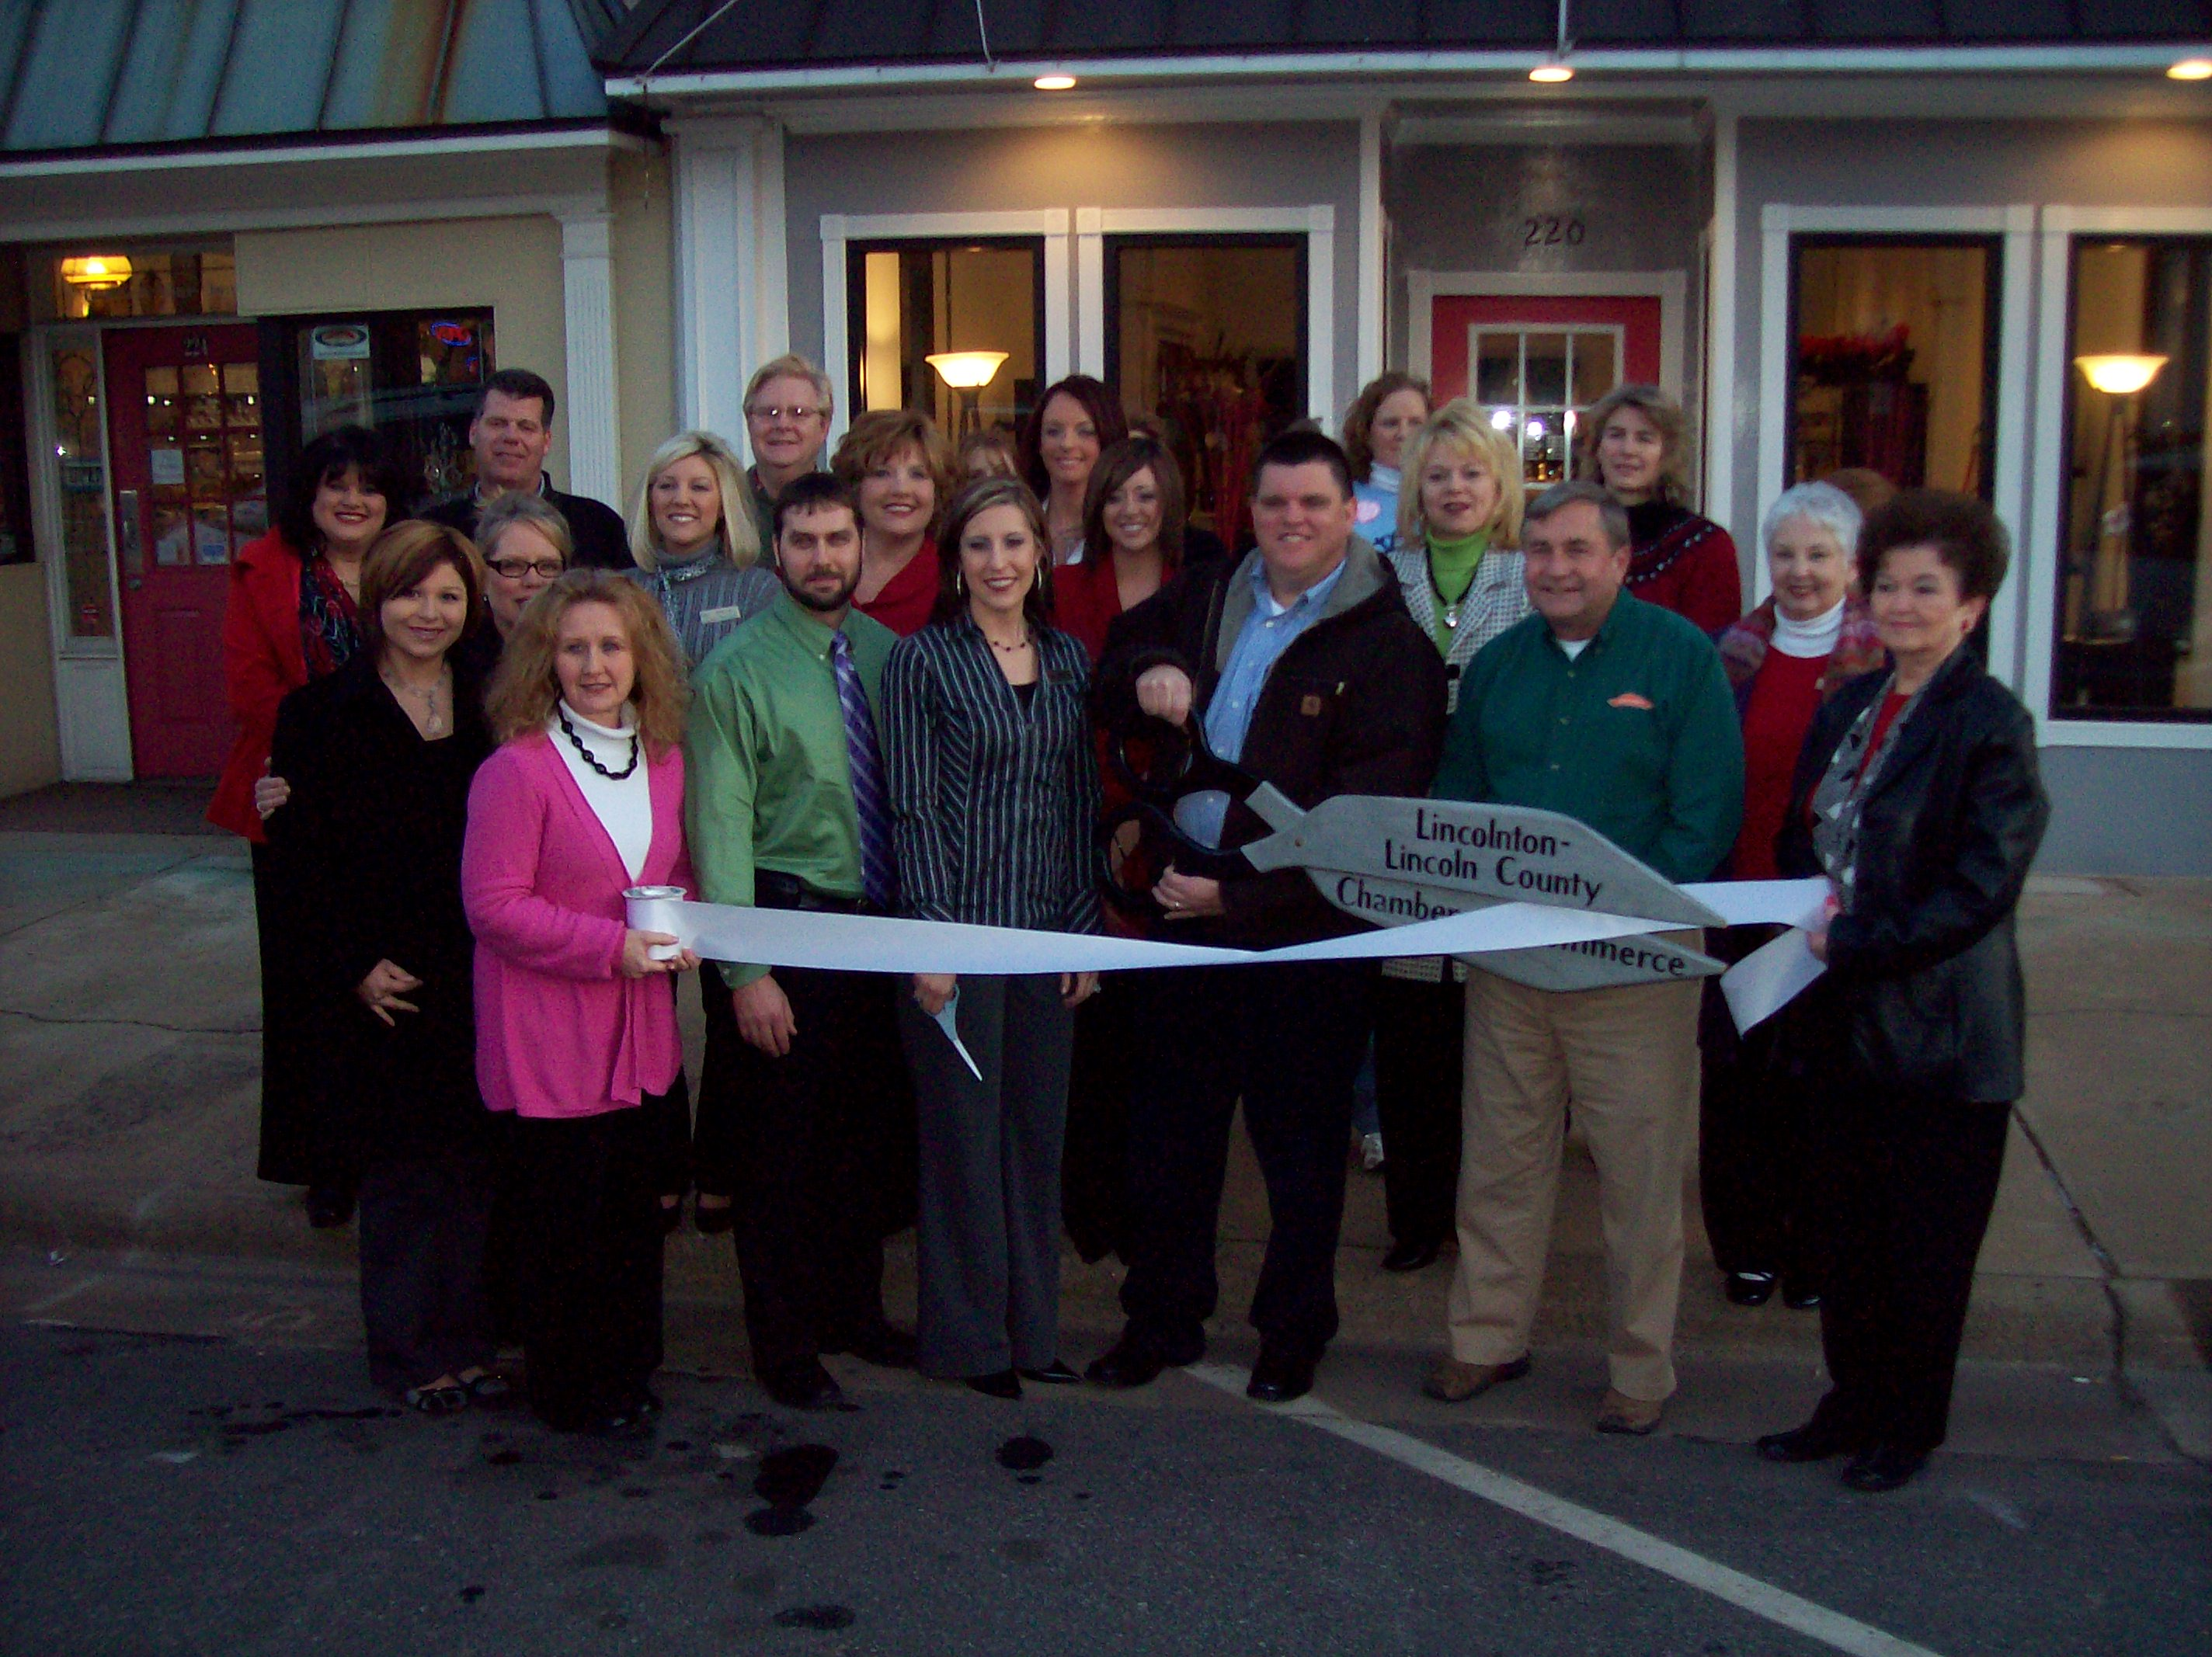 Ribbon cutting gathering